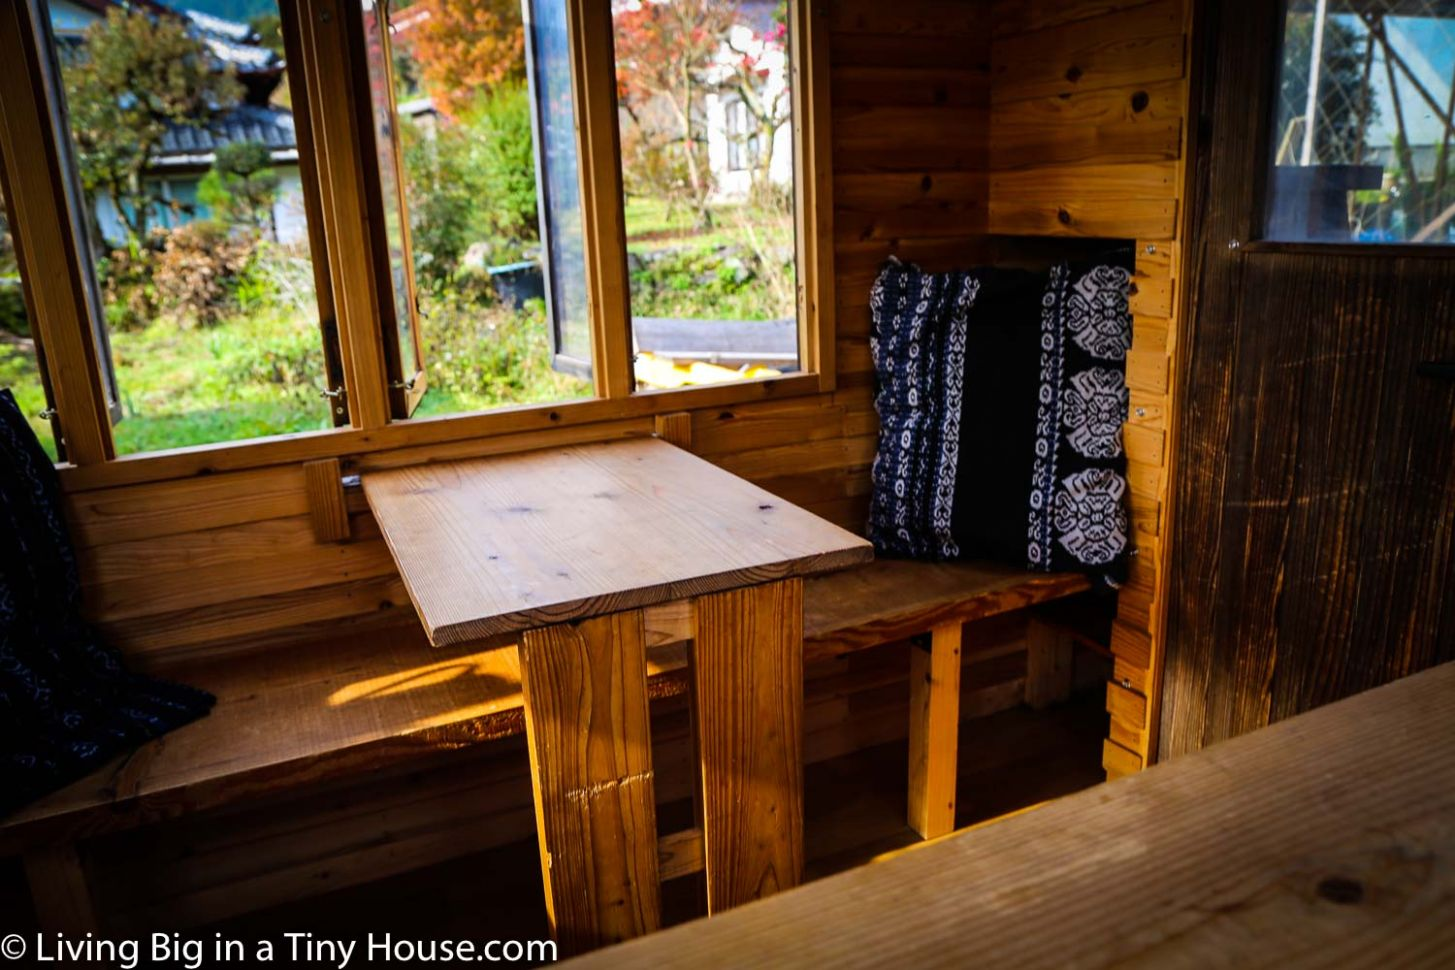 Master Craftsman In Japan Builds Amazing Tiny House On Wheels ...